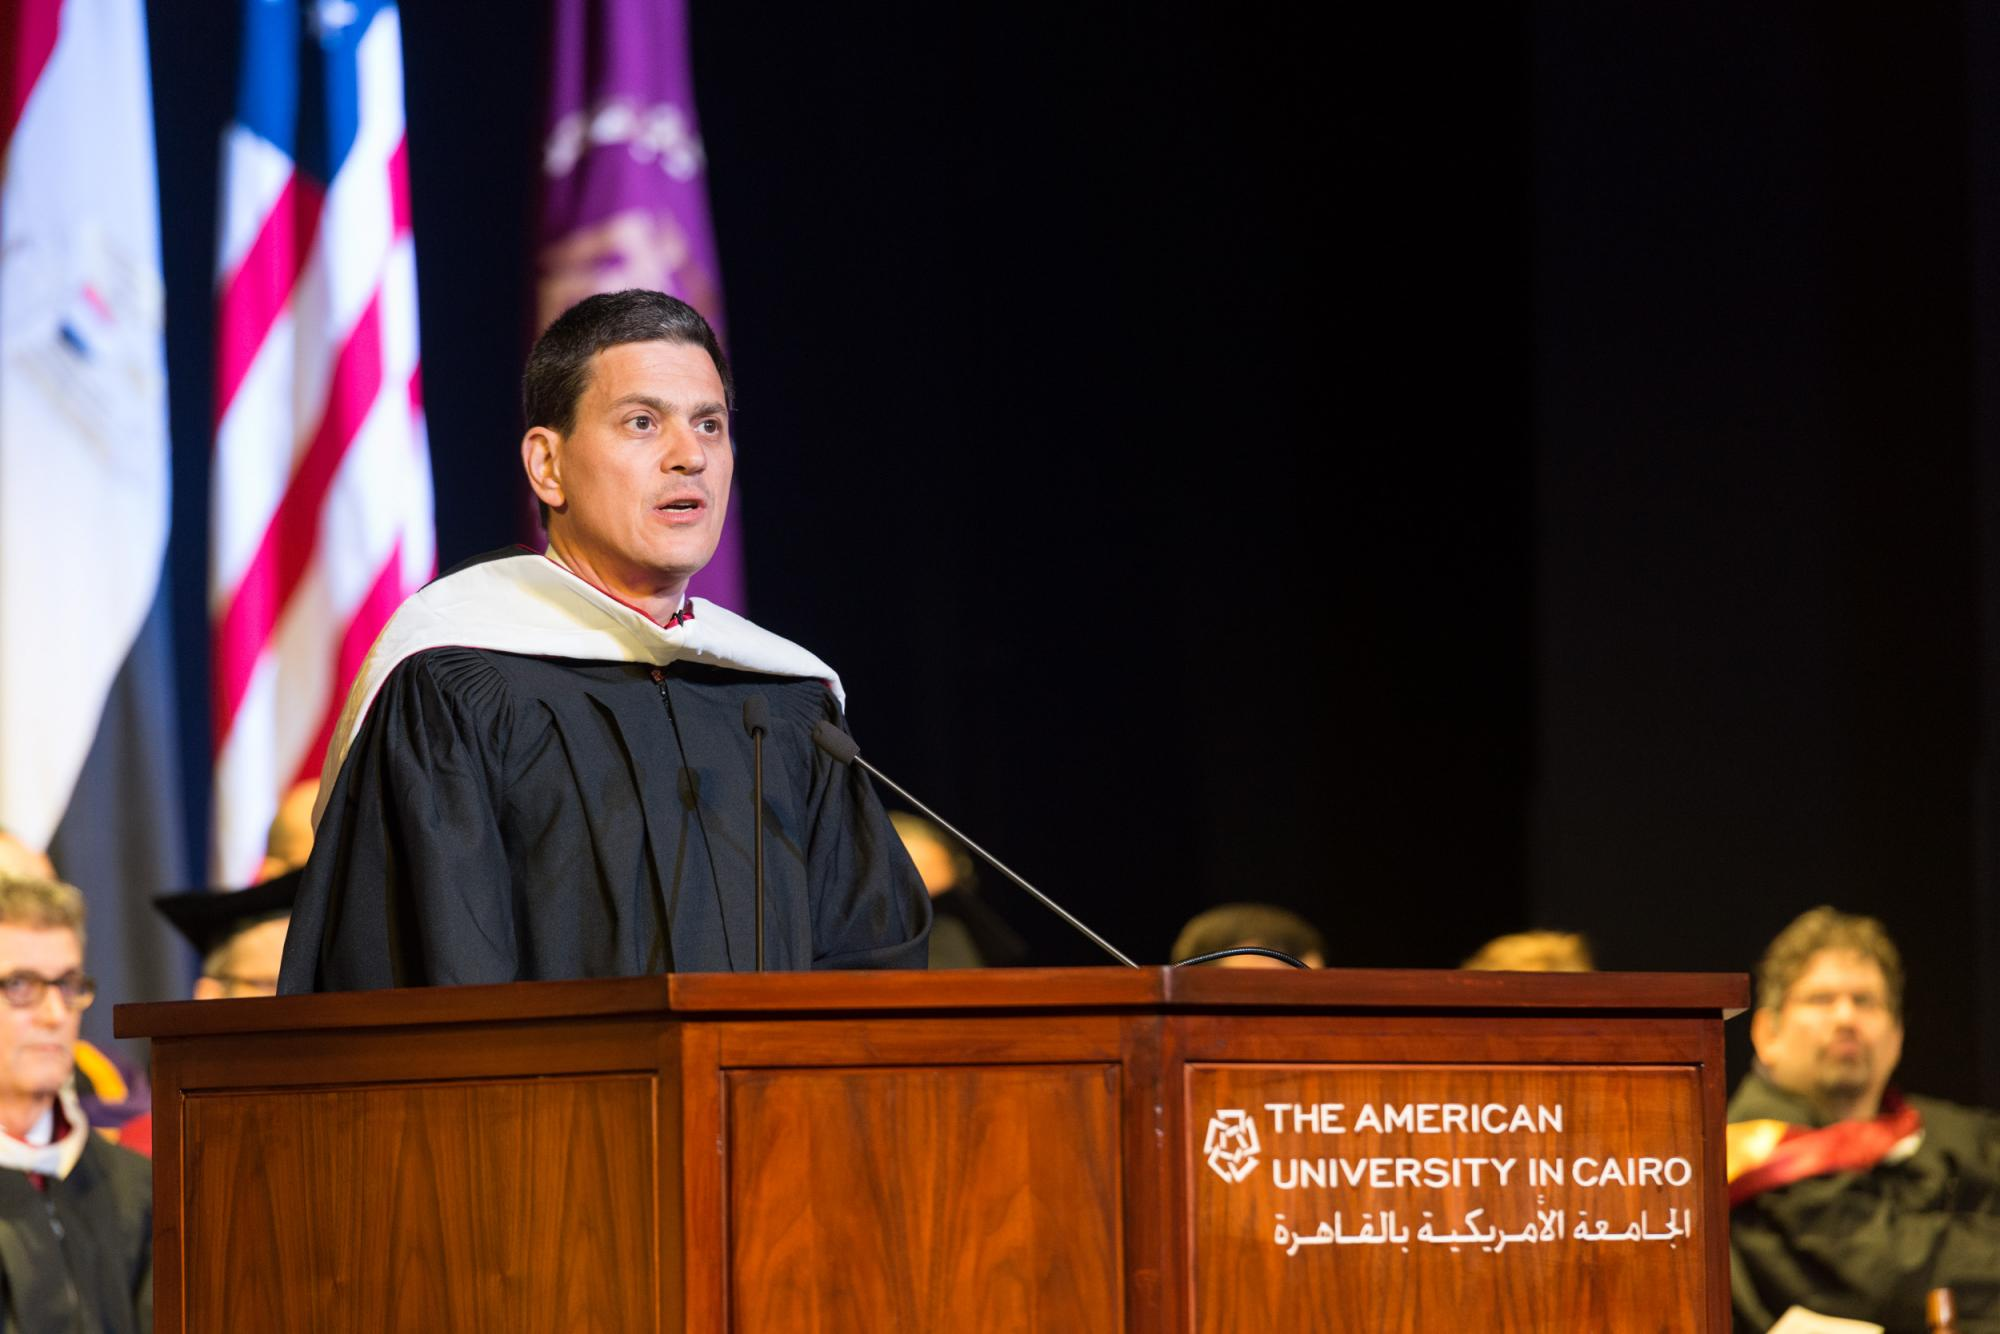 David Miliband delivers keynote speech at the 2017 graduate commencement